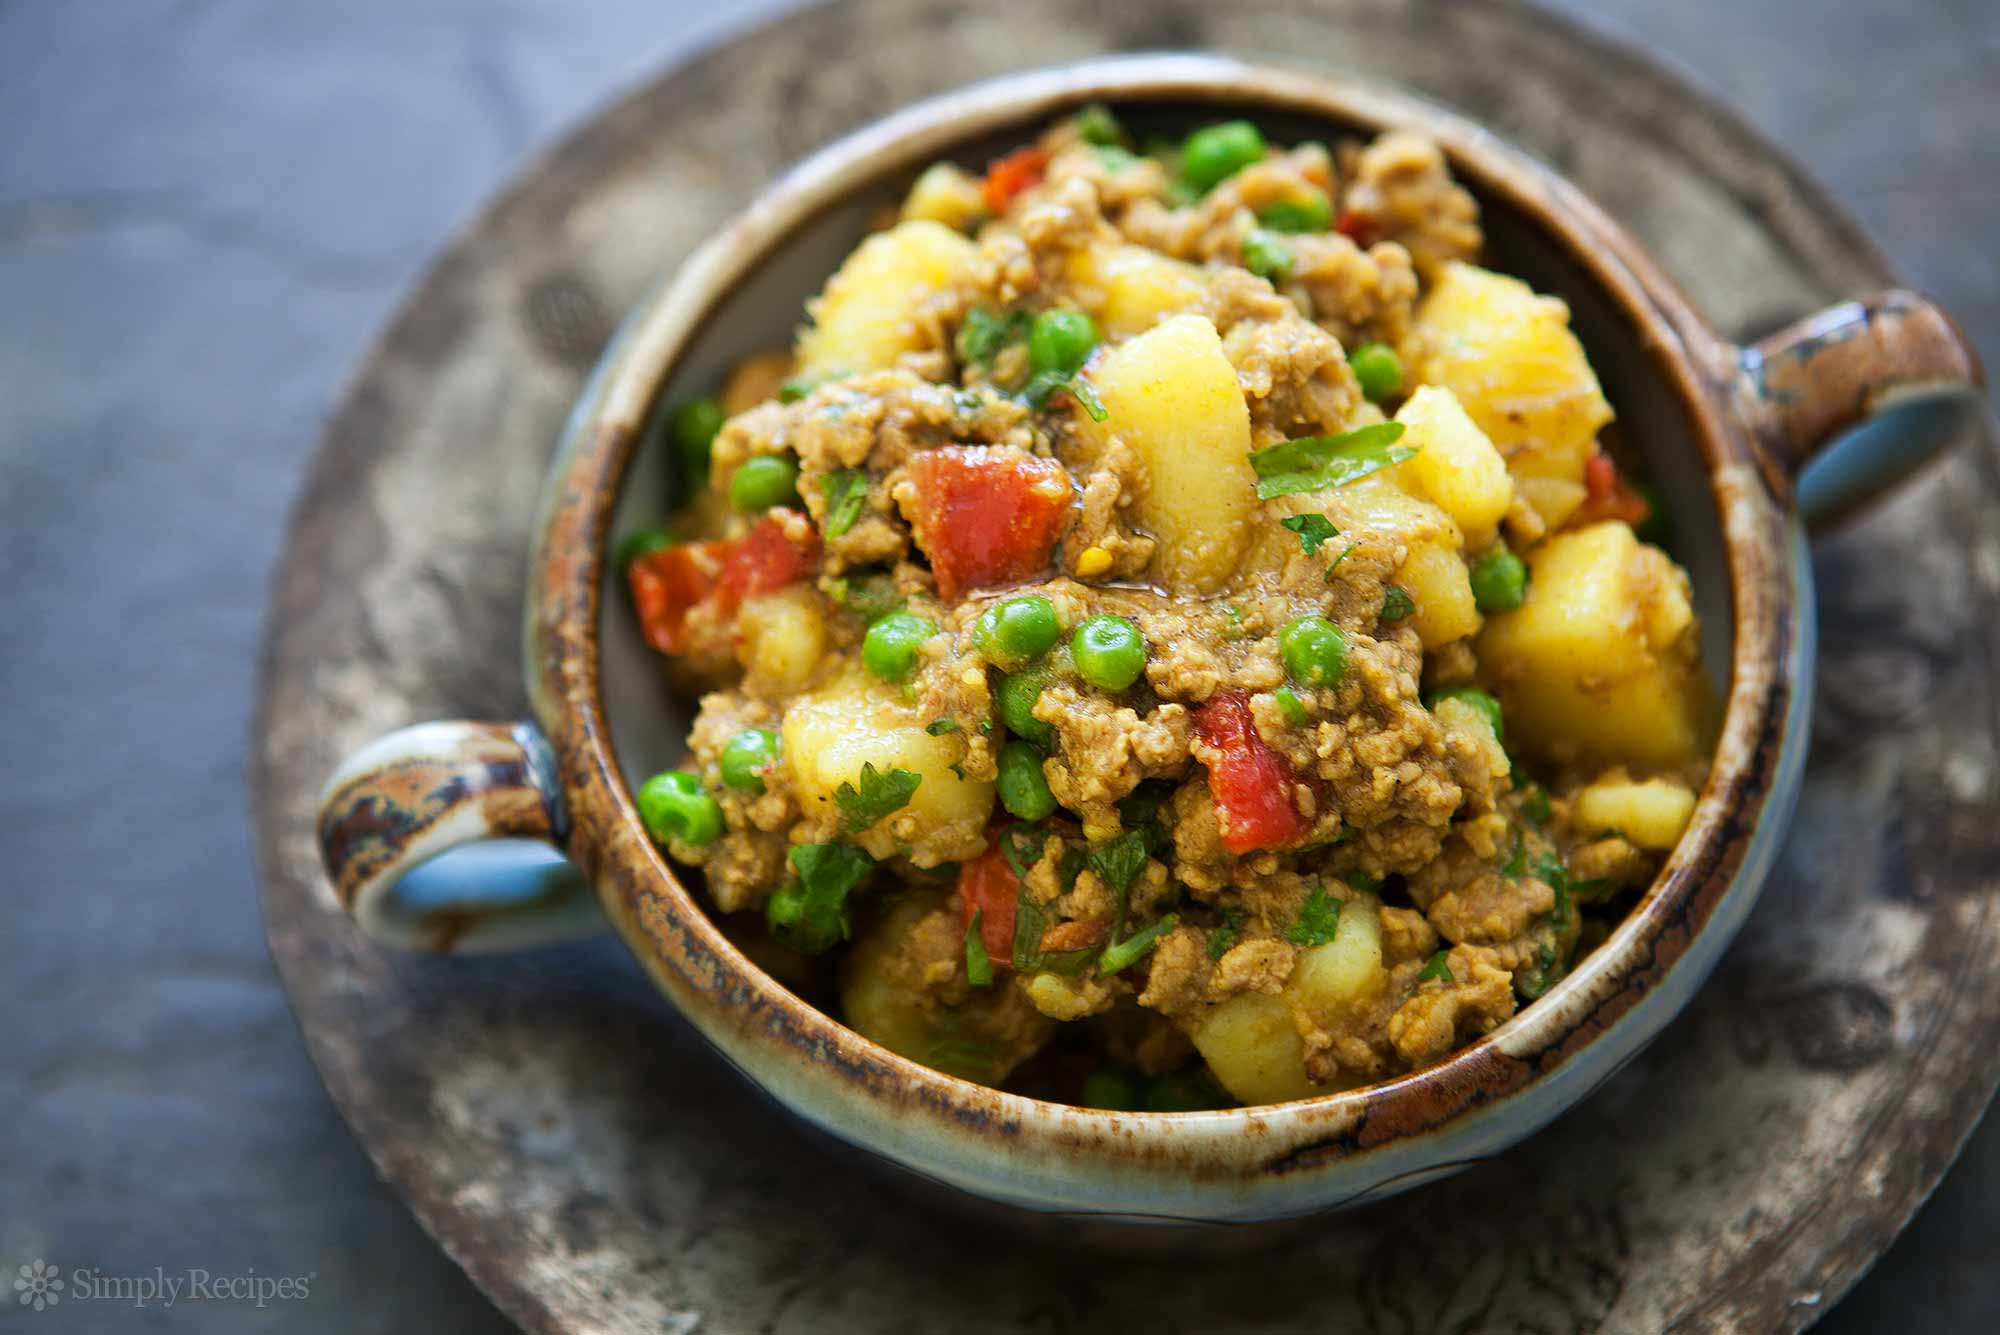 Healthy Recipes With Ground Turkey Meat  Curried Ground Turkey with Potatoes Recipe